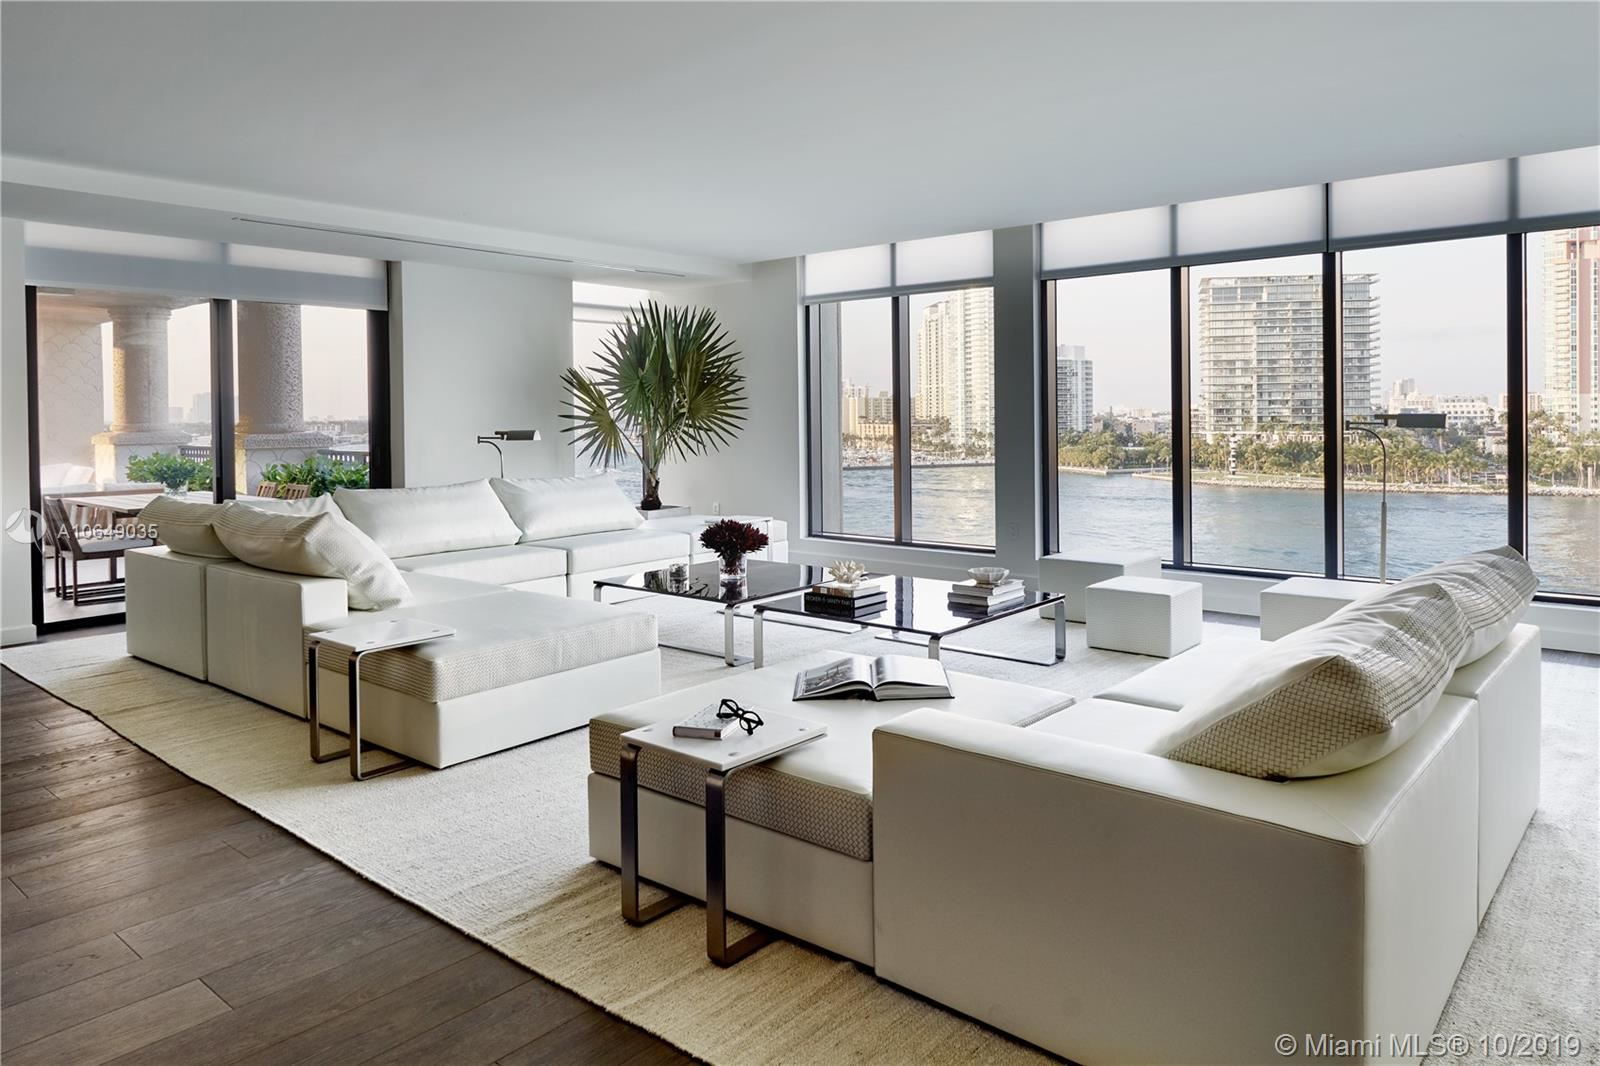 Photo 1 of Listing MLS a10649035 in 7073 Fisher Island Dr #7073 Miami Beach FL 33139